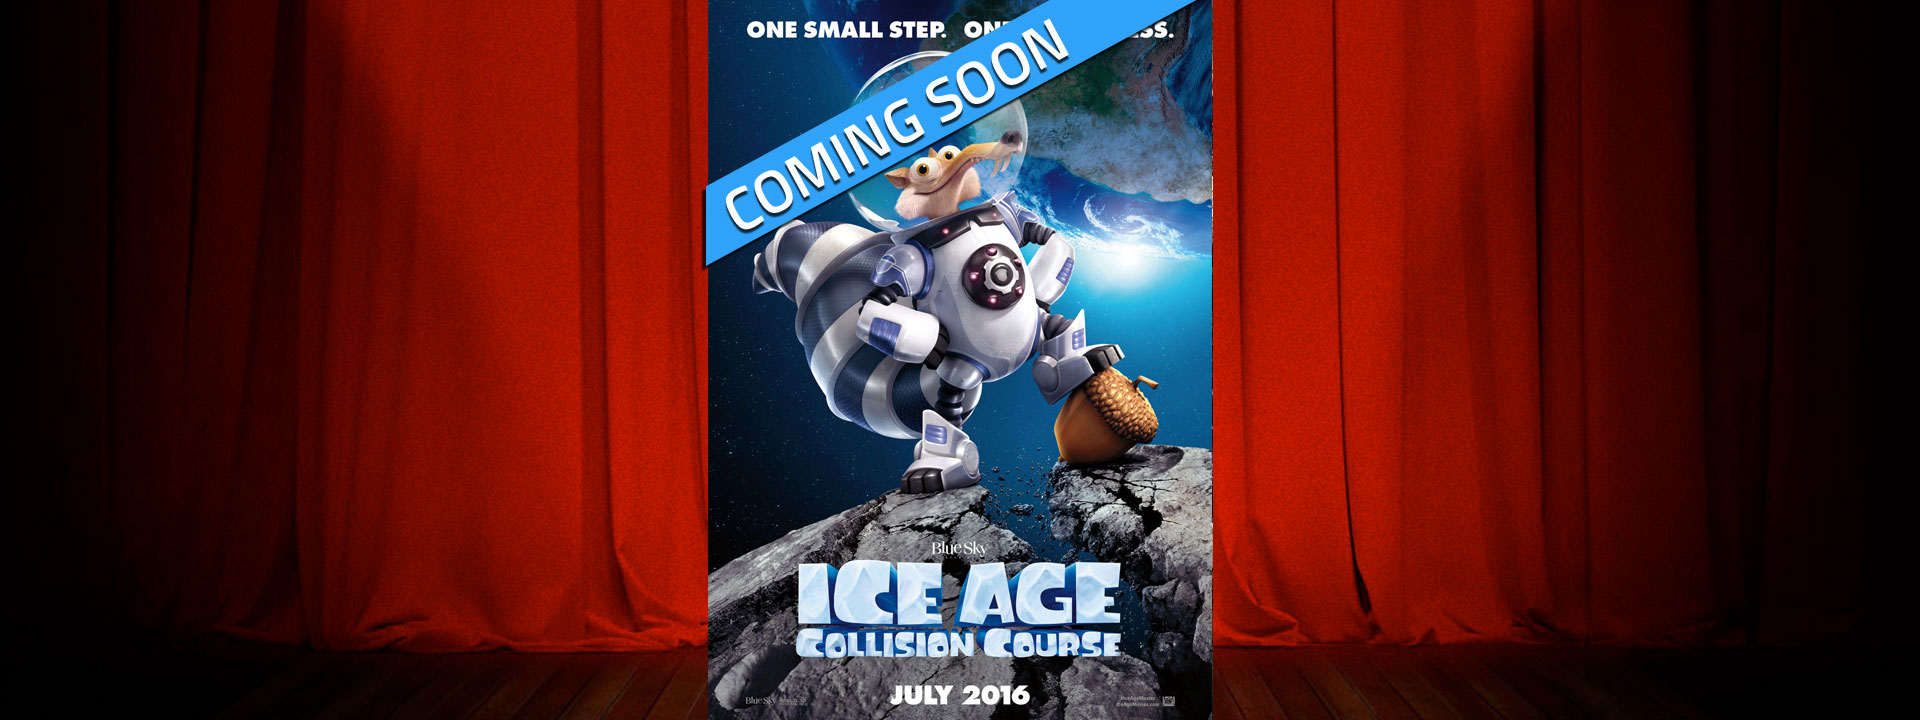 Ice Age: Collision Course - Coming Soon